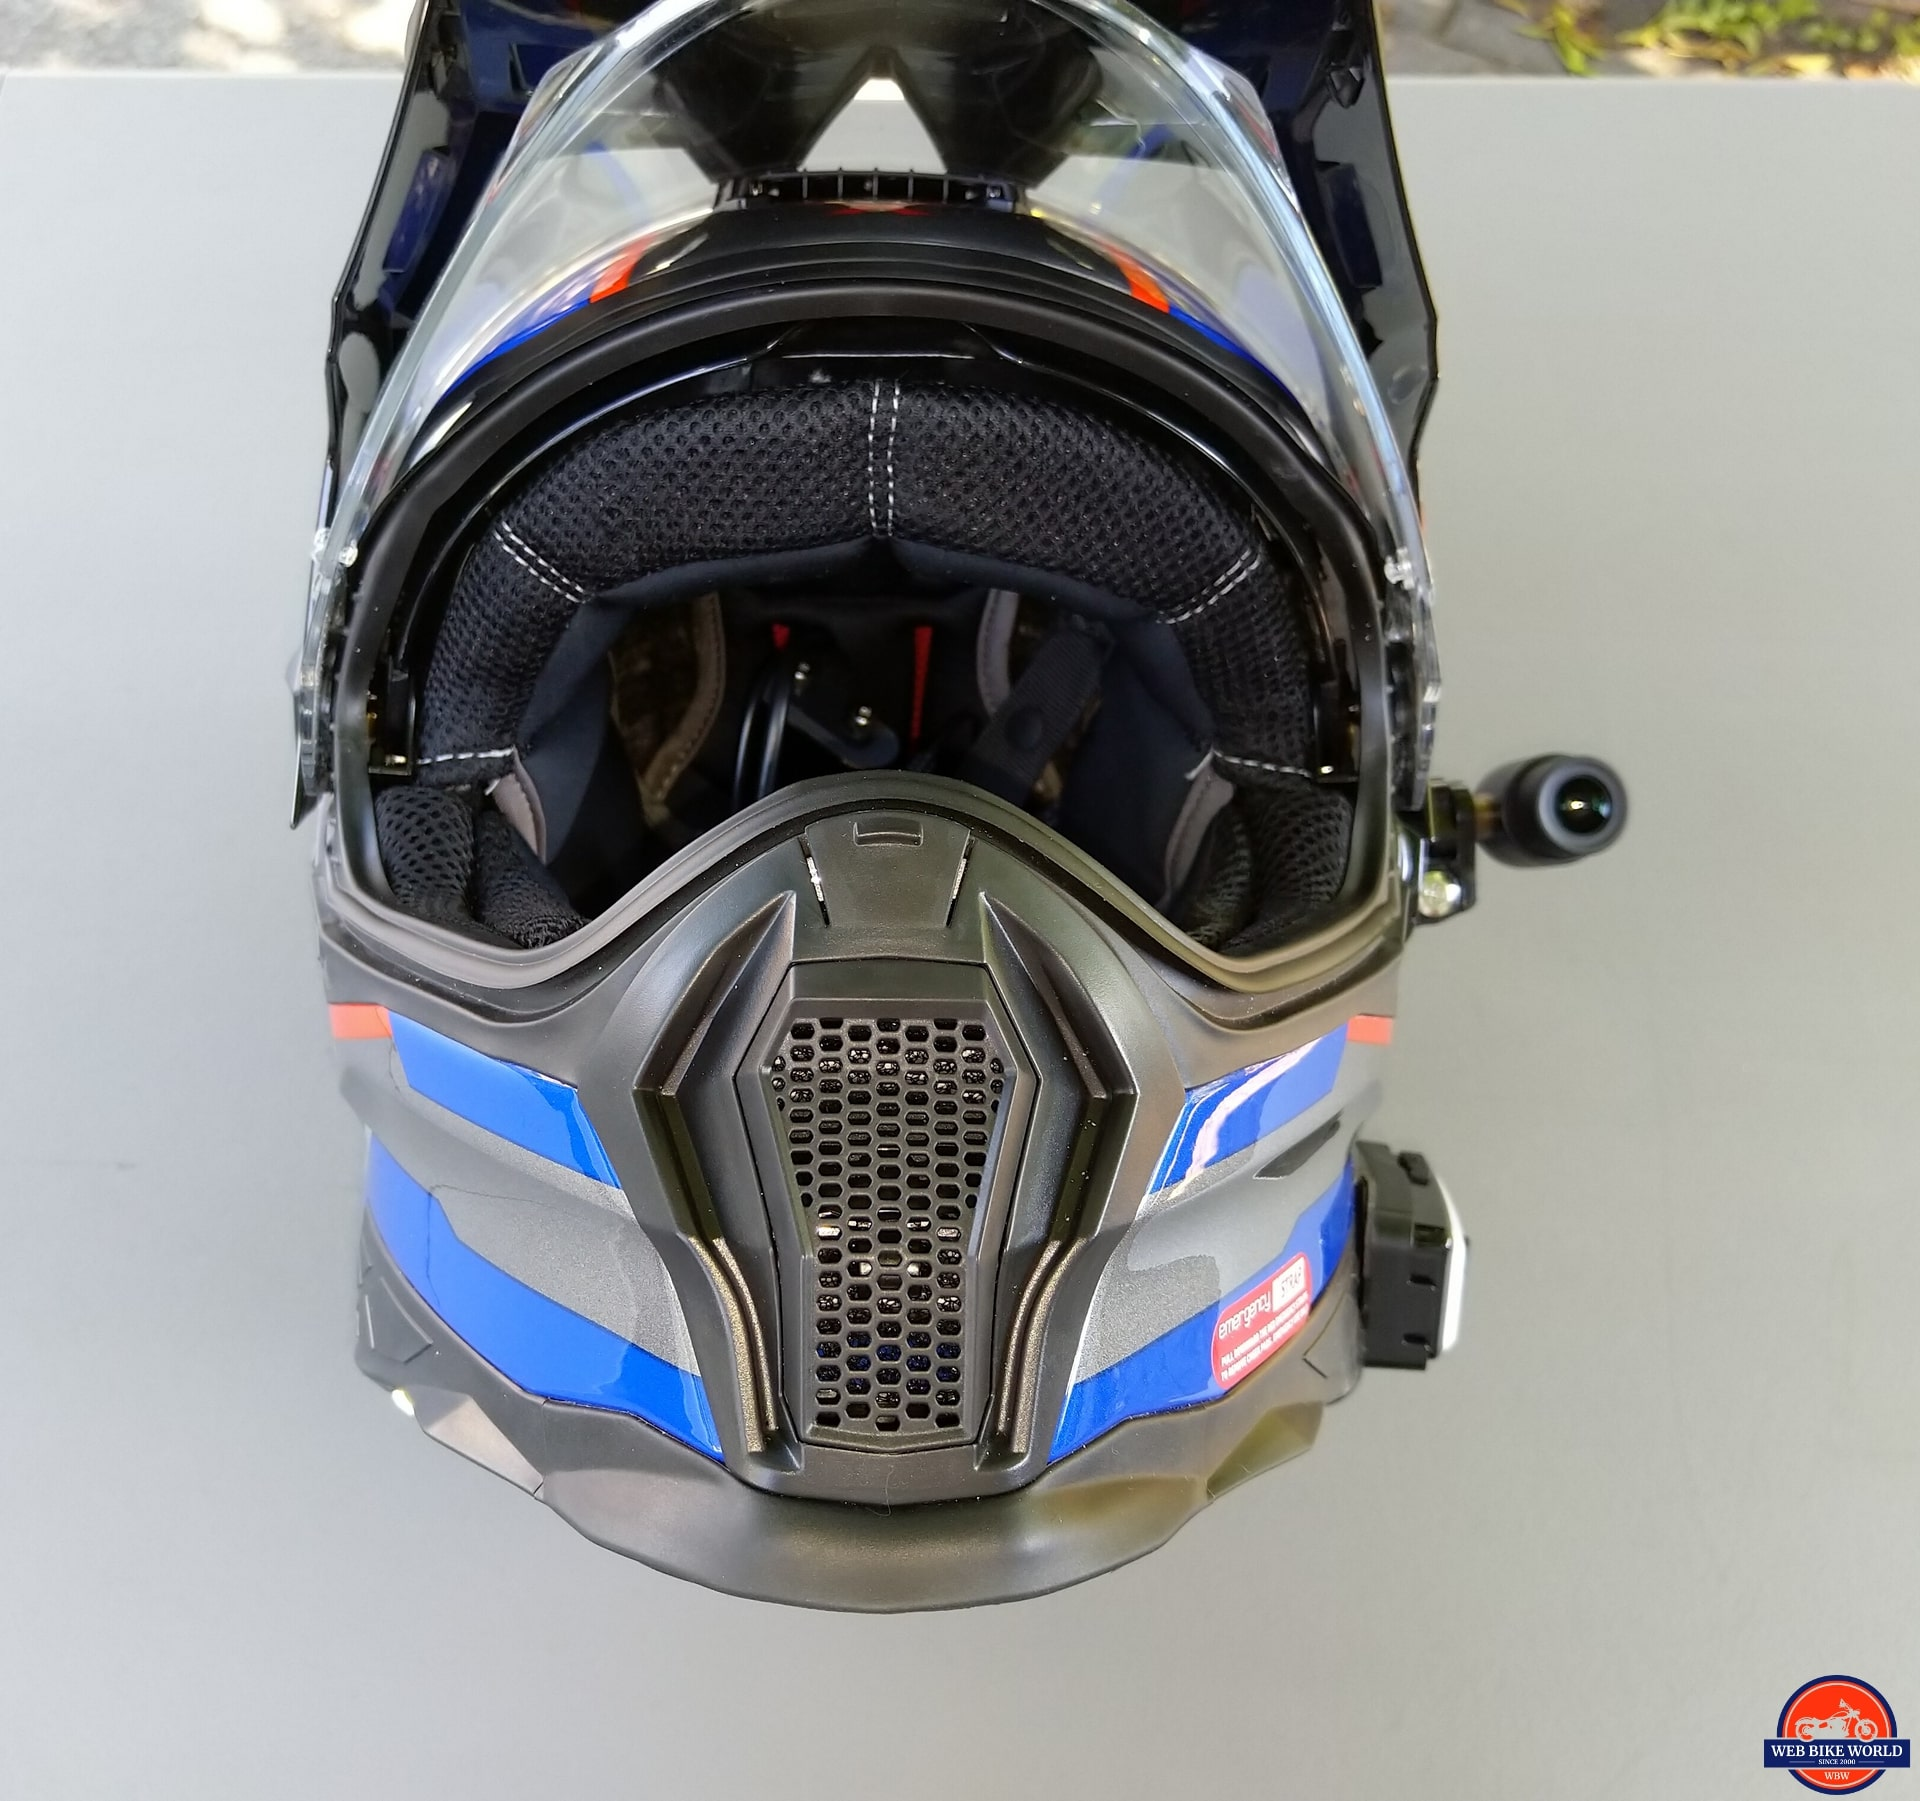 NEXX X-Patrol Helmet with BK-T1 Headset integration and INNOVV C5 camera integration